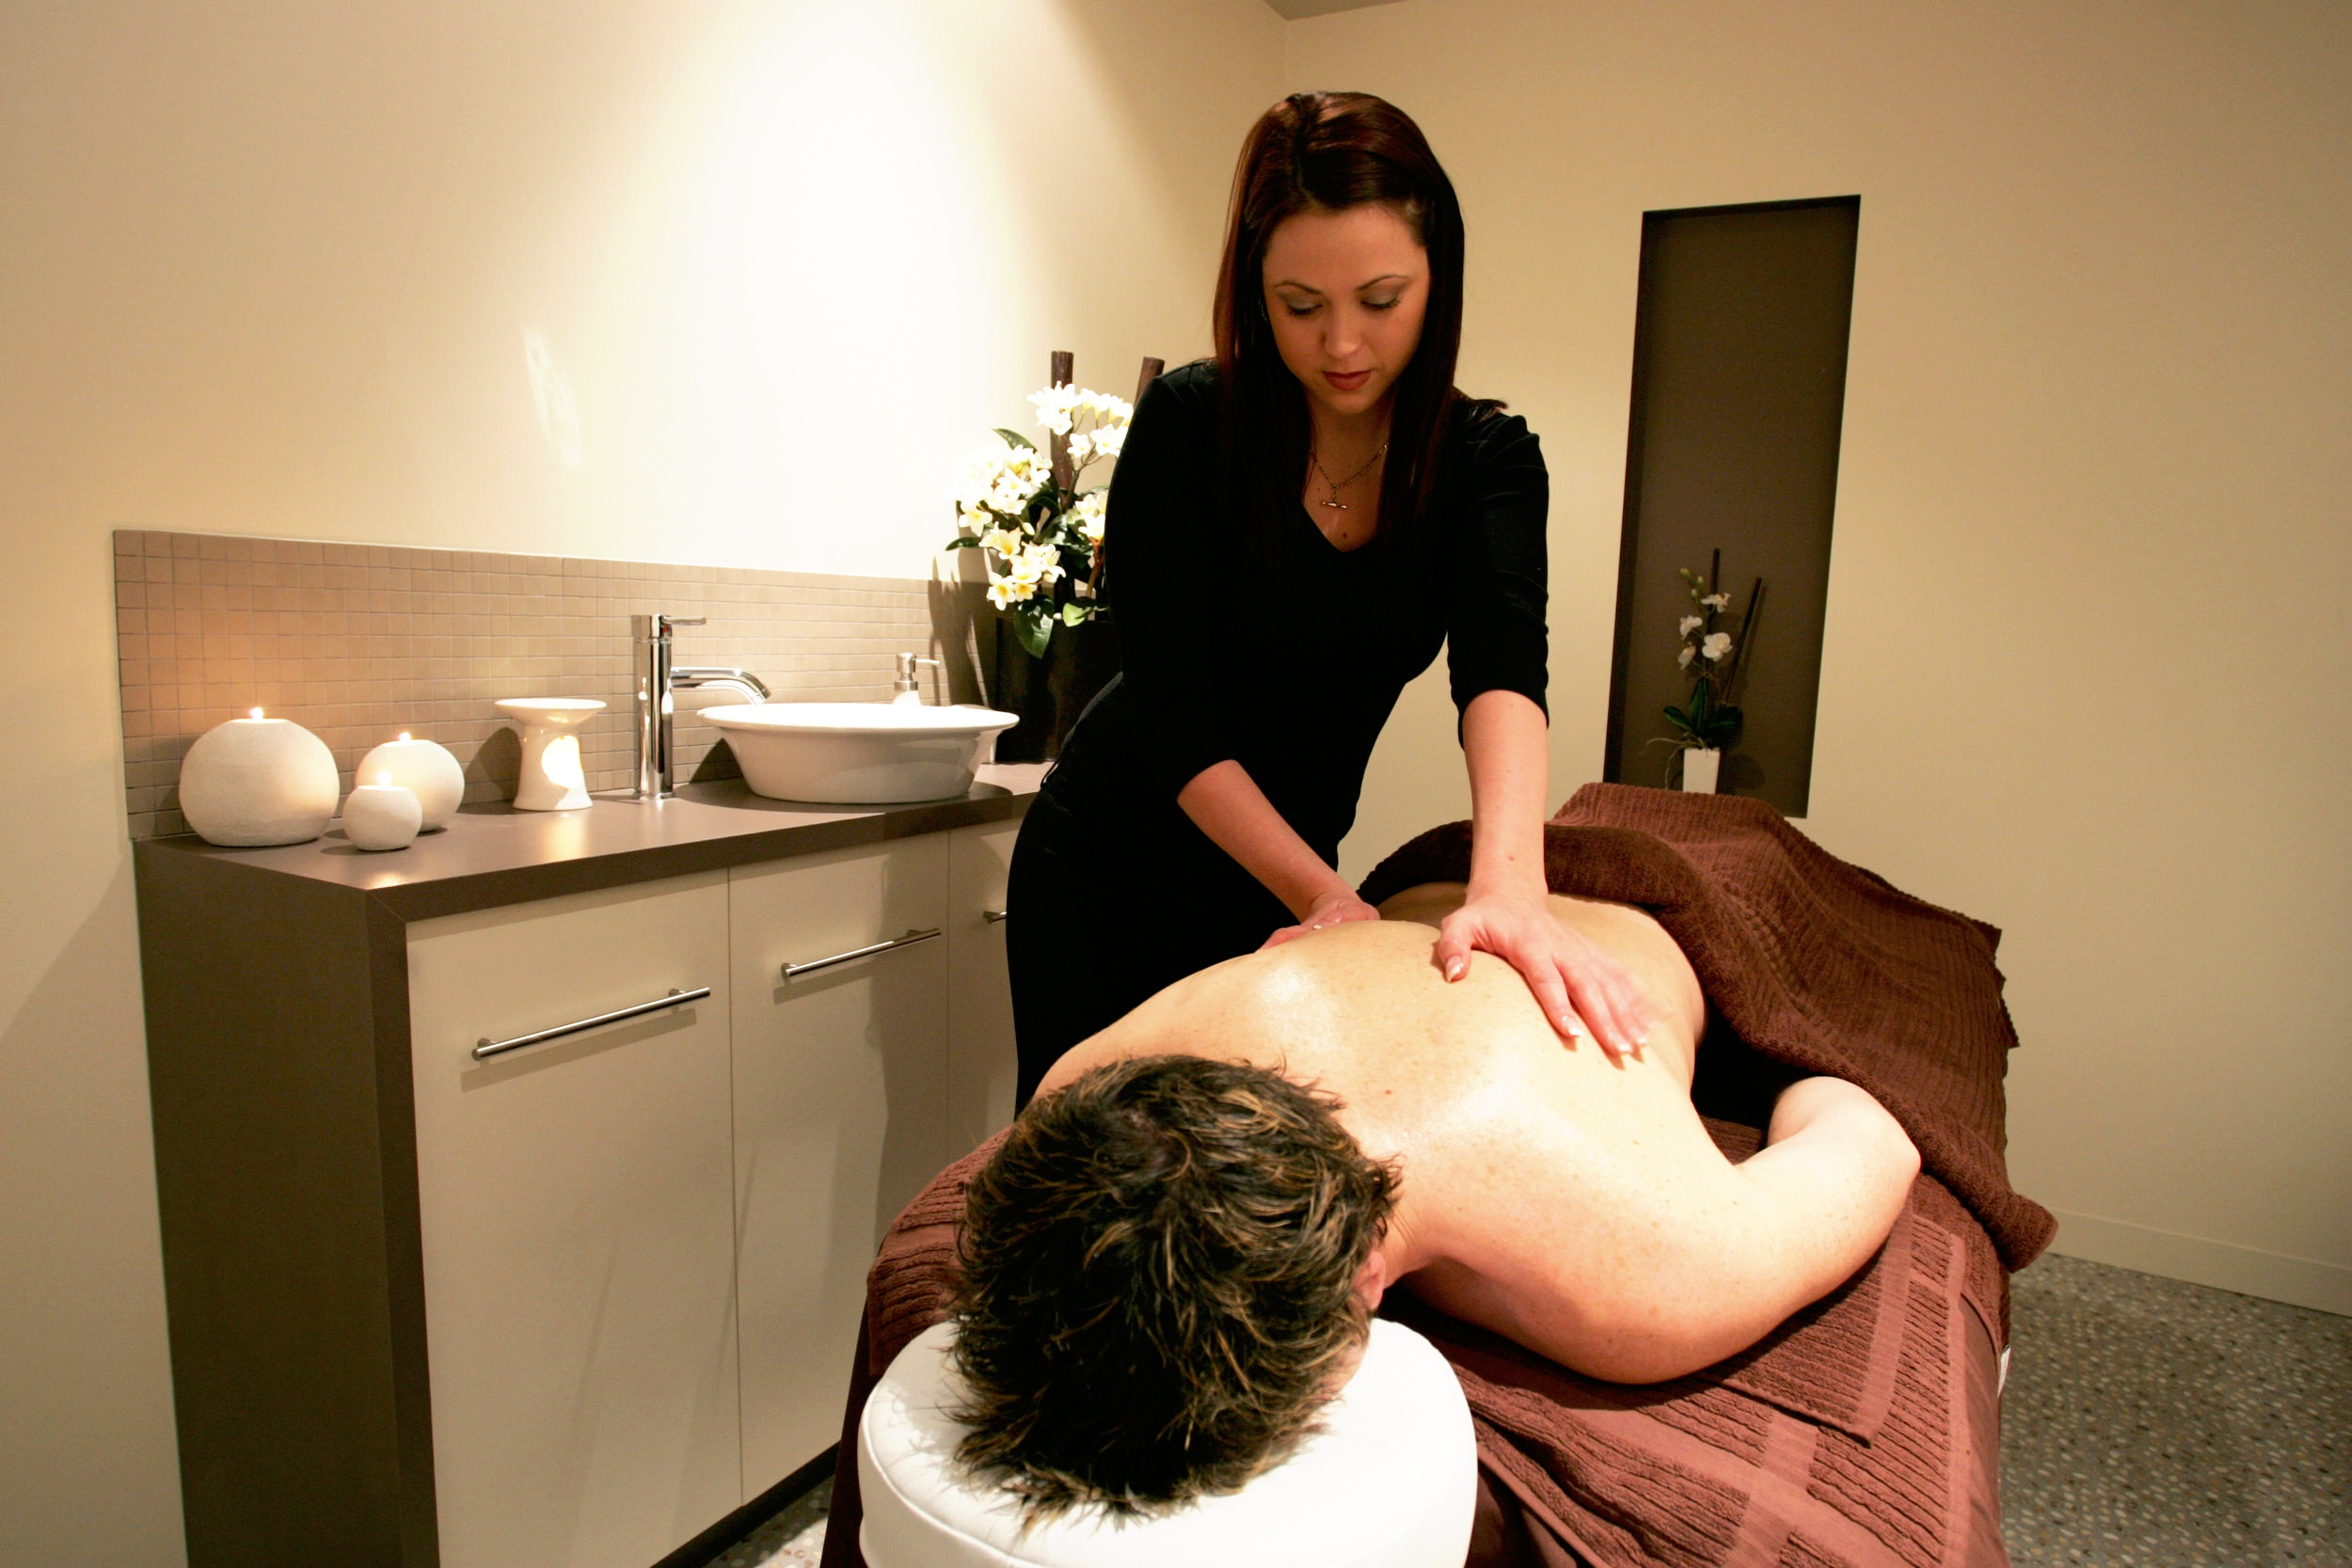 Monday - FridayWinter Special - Warm up with this winter with our relaxing 90min Winter Package:45 minute relaxation massage45 minute spa facial includes a scalp massage+ a free gift!for only - $140*Ask us about upgrading or extending your treatments!*Conditions apply. Available Mon-Fri onlySpecial offer not valid on Sundays or Public Holidays.Treatments not to be split or shared.Mention this promo at time of booking to ensure the special applies to you. Limited appointments available.